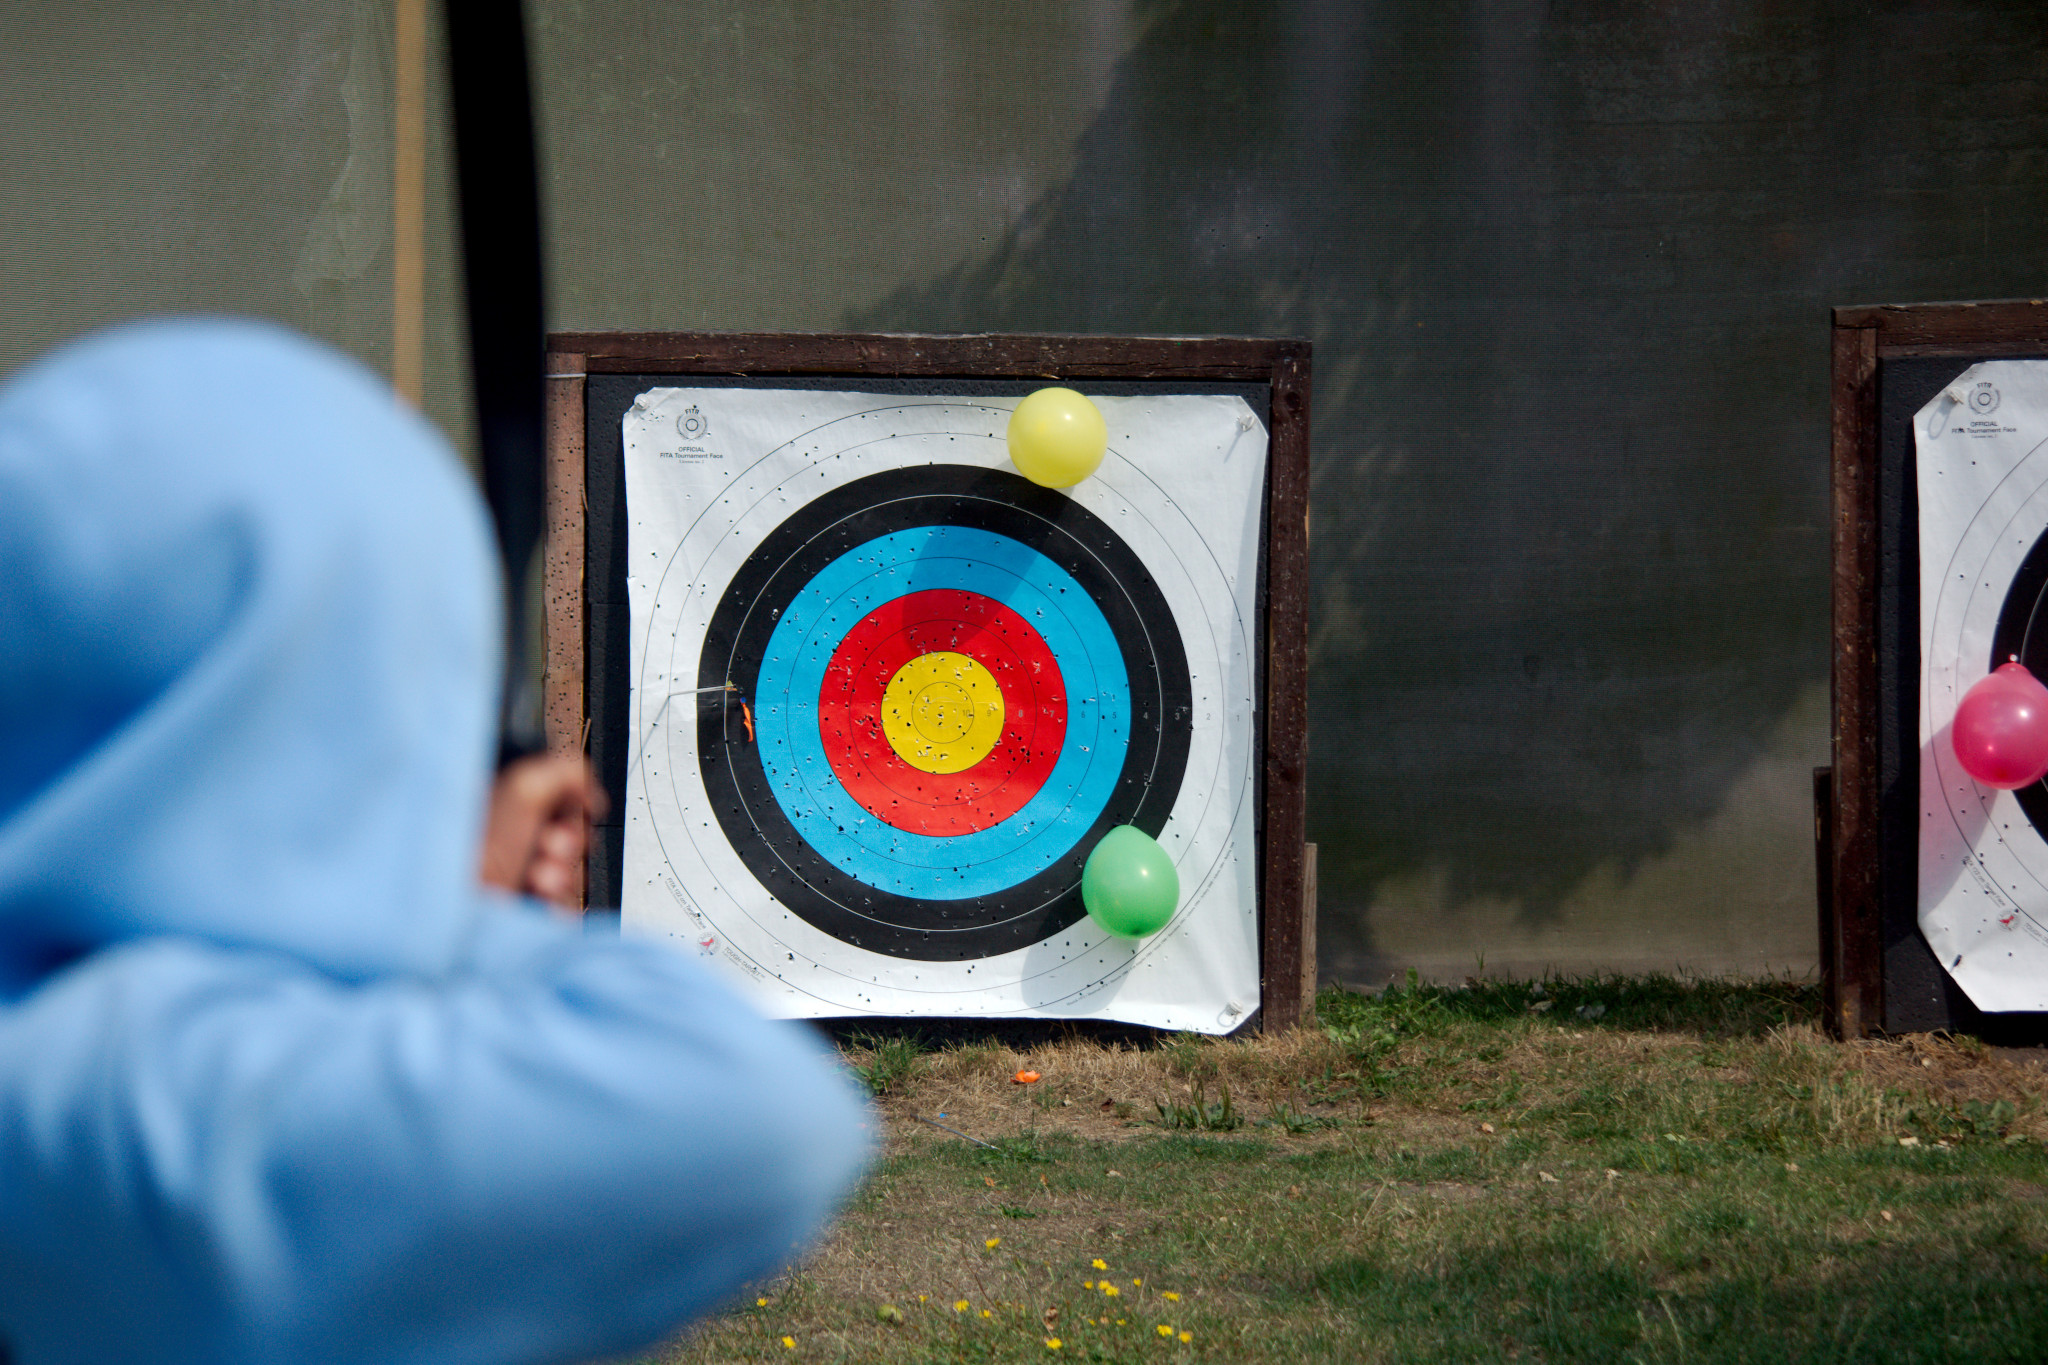 A youth in a blue hoodie from behind, aiming an arrow at a target hung with colourful balloons.